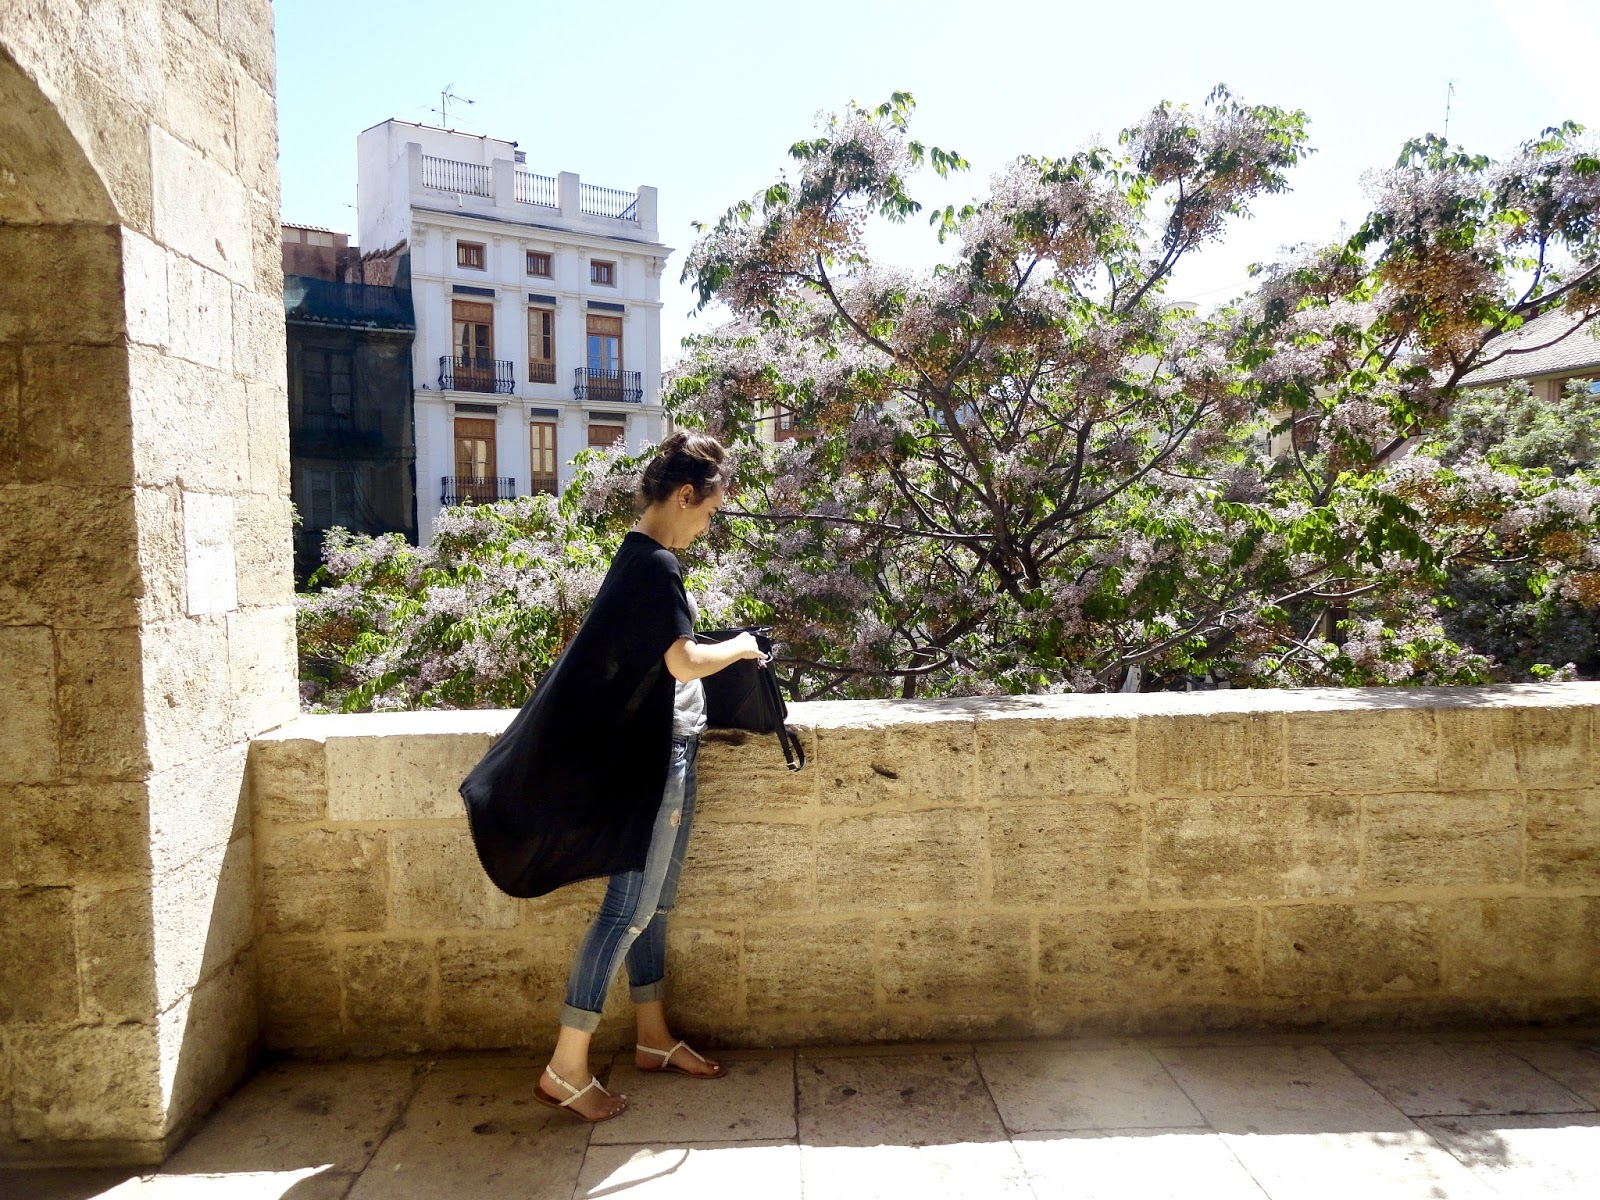 girl torres de serranos trees flowers view valencia spain